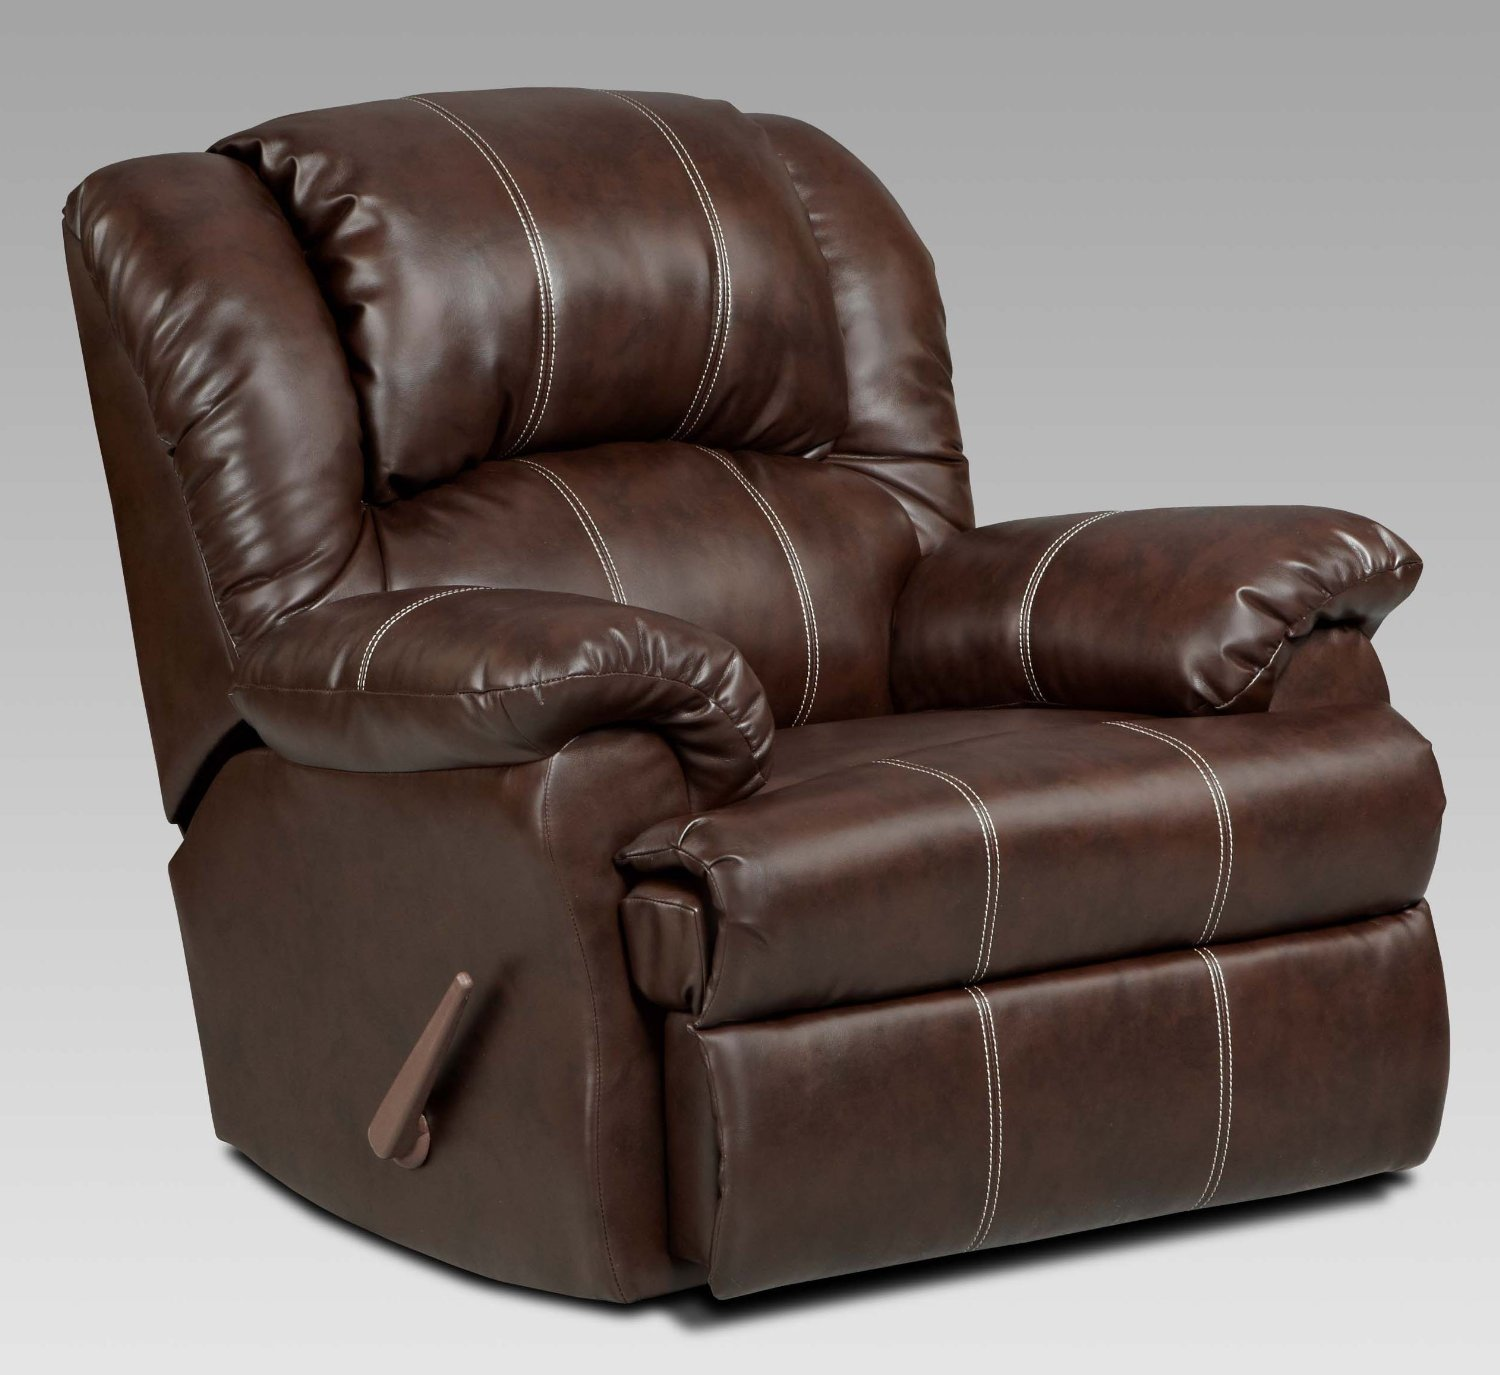 Roundhill Furniture Brandan Bonded Leather Dual Rocker Recliner Review